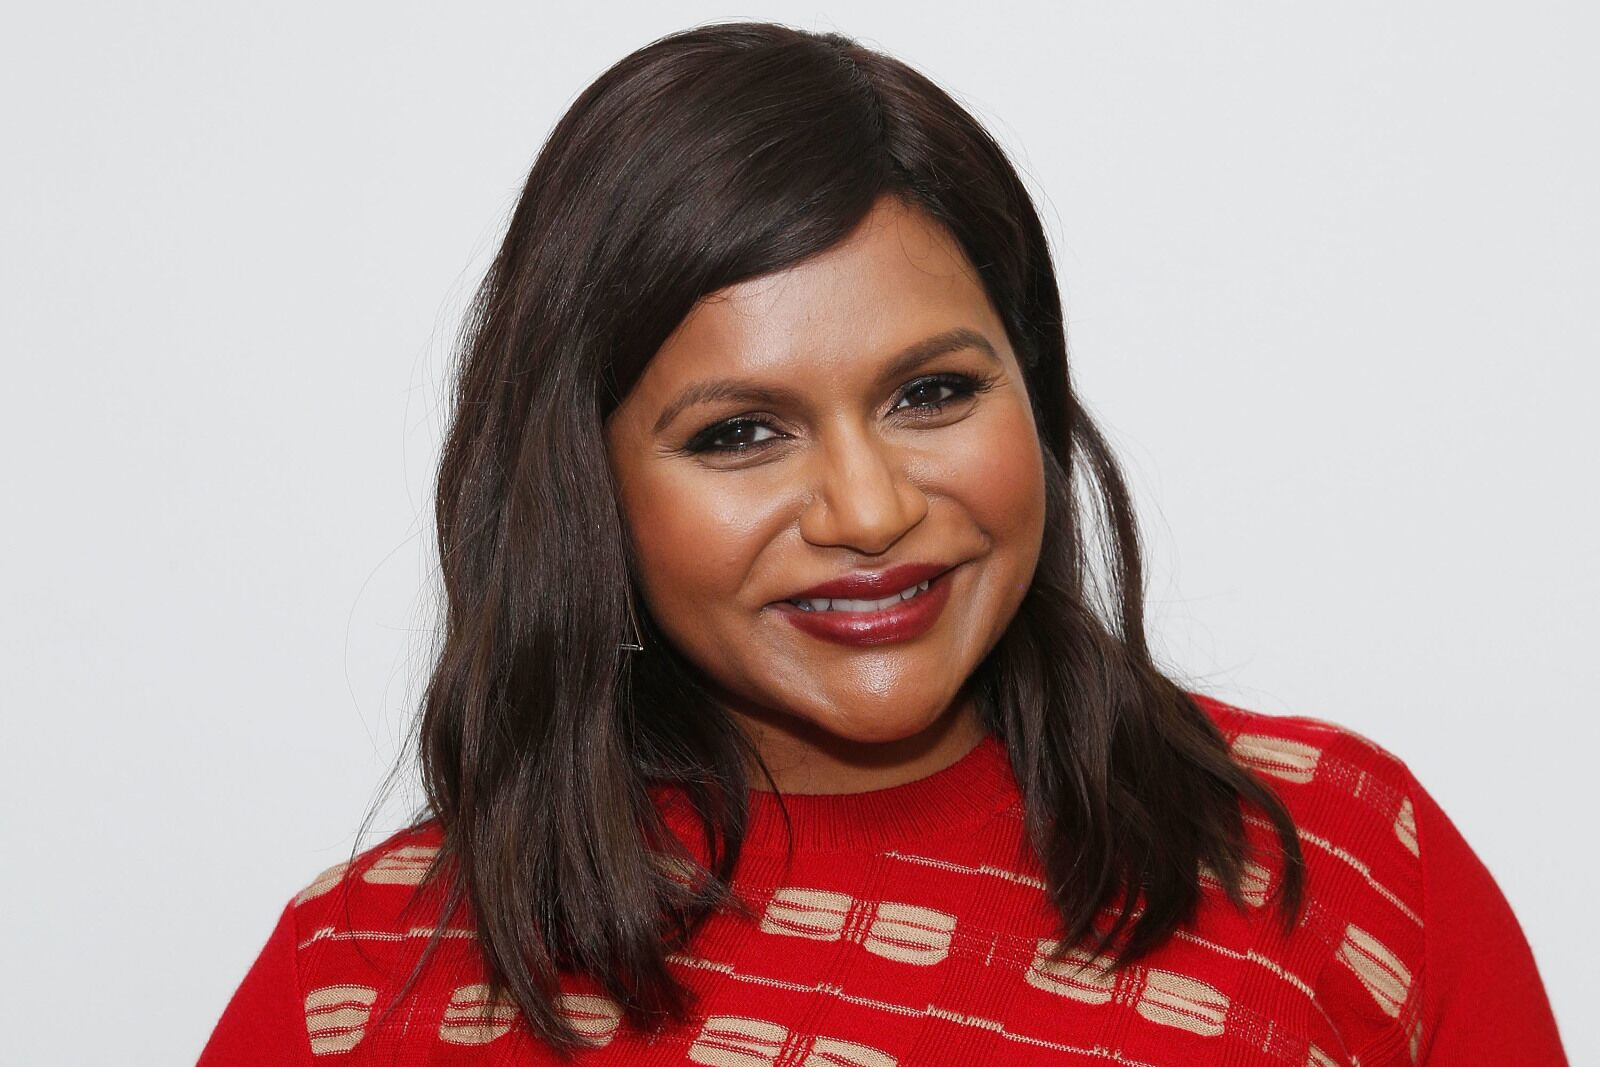 Mindy Kaling casts lead in upcoming Netflix comedy series